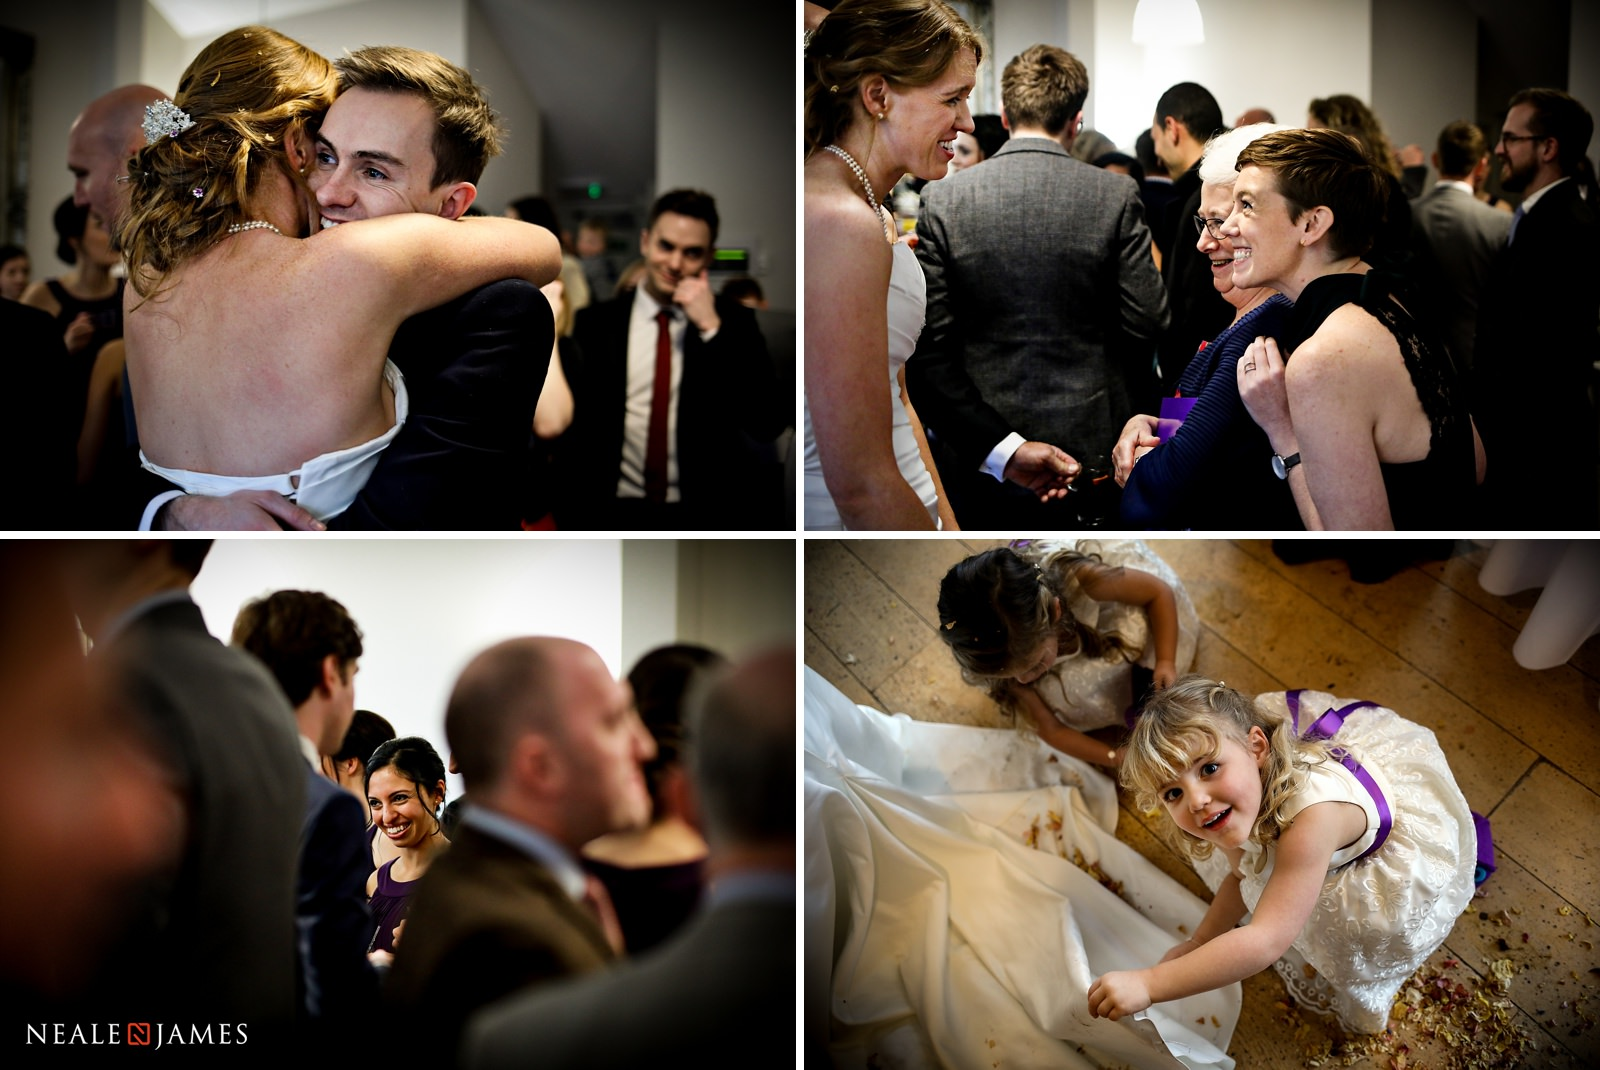 Guests enjoying themselves during the wedding reception in the Castle Barn at Wasing Park